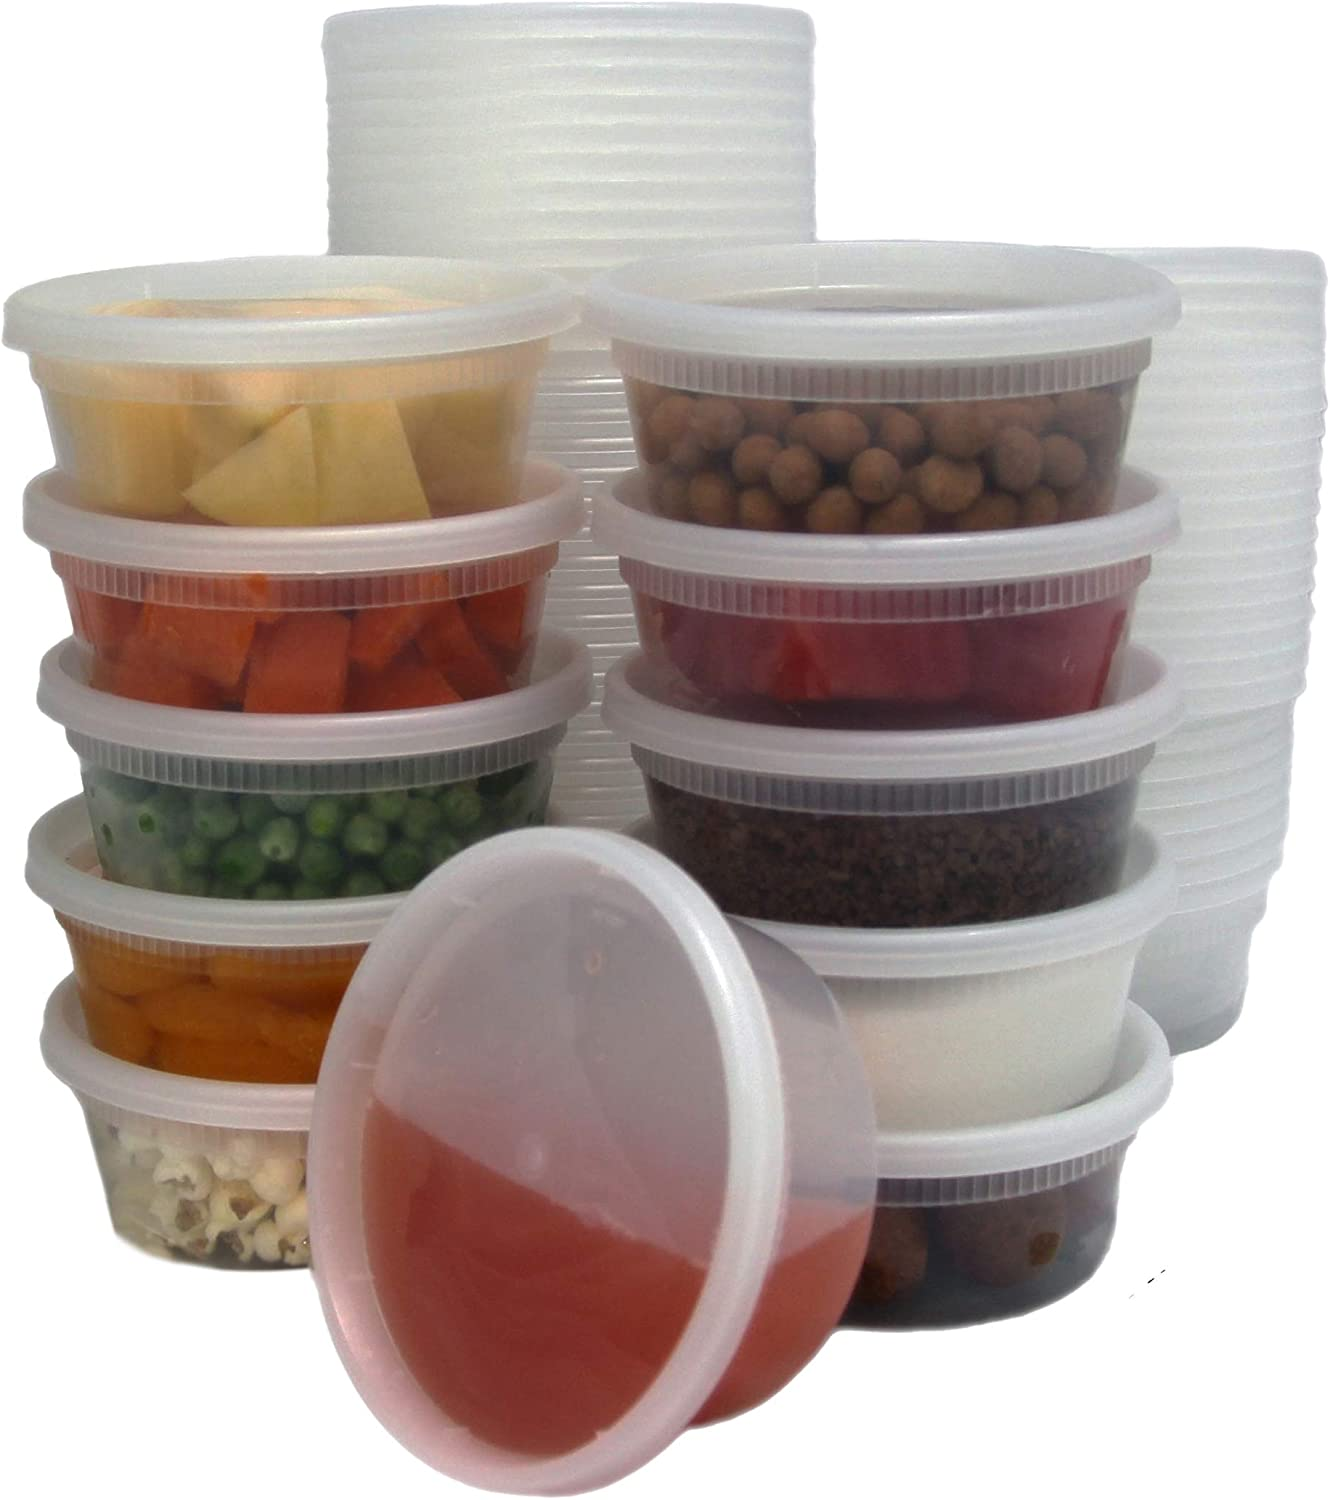 [40 Pack] Food Storage Containers with Lids, Round Plastic Deli Cups, US Made, 8 oz, Cup Size, Leak Proof, Airtight, Microwave & Dishwasher Safe, Stackable, Reusable, White